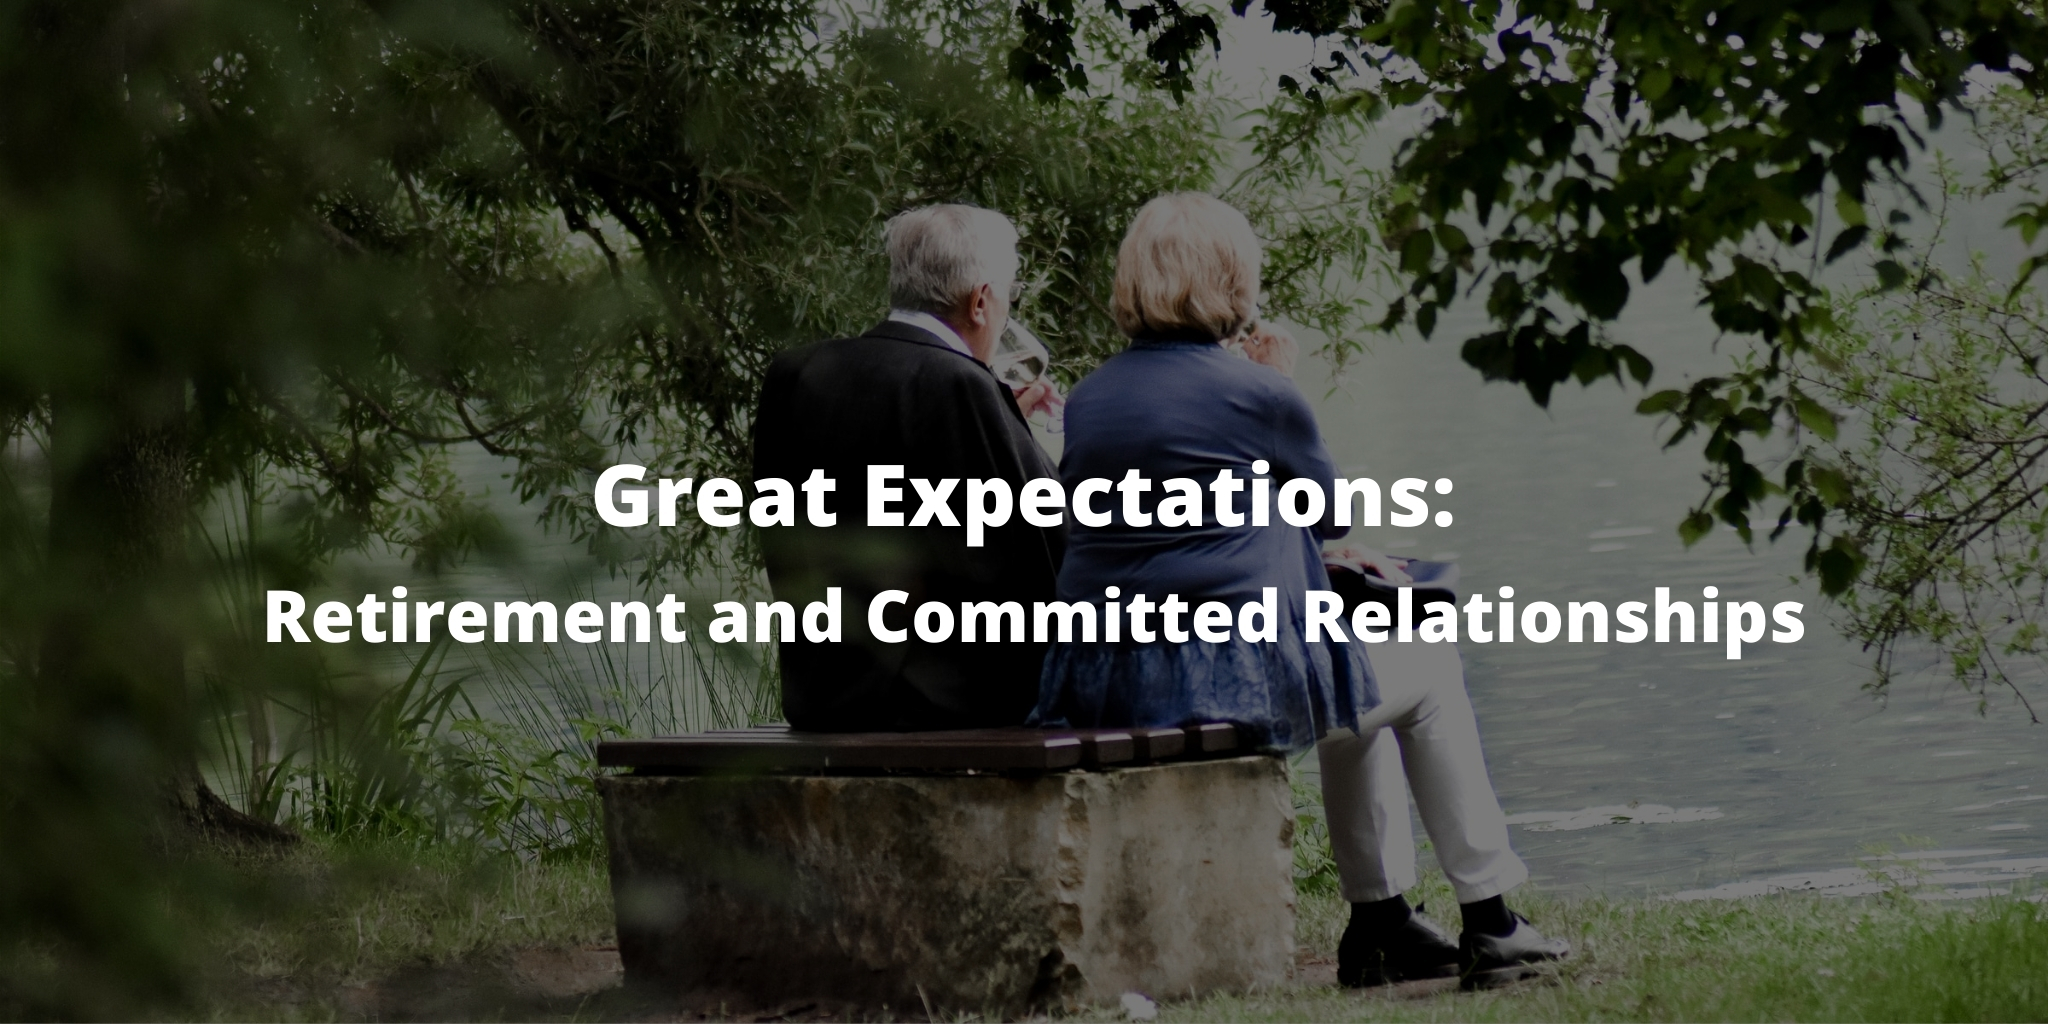 Great Expectations: Retirement and Committed Relationships